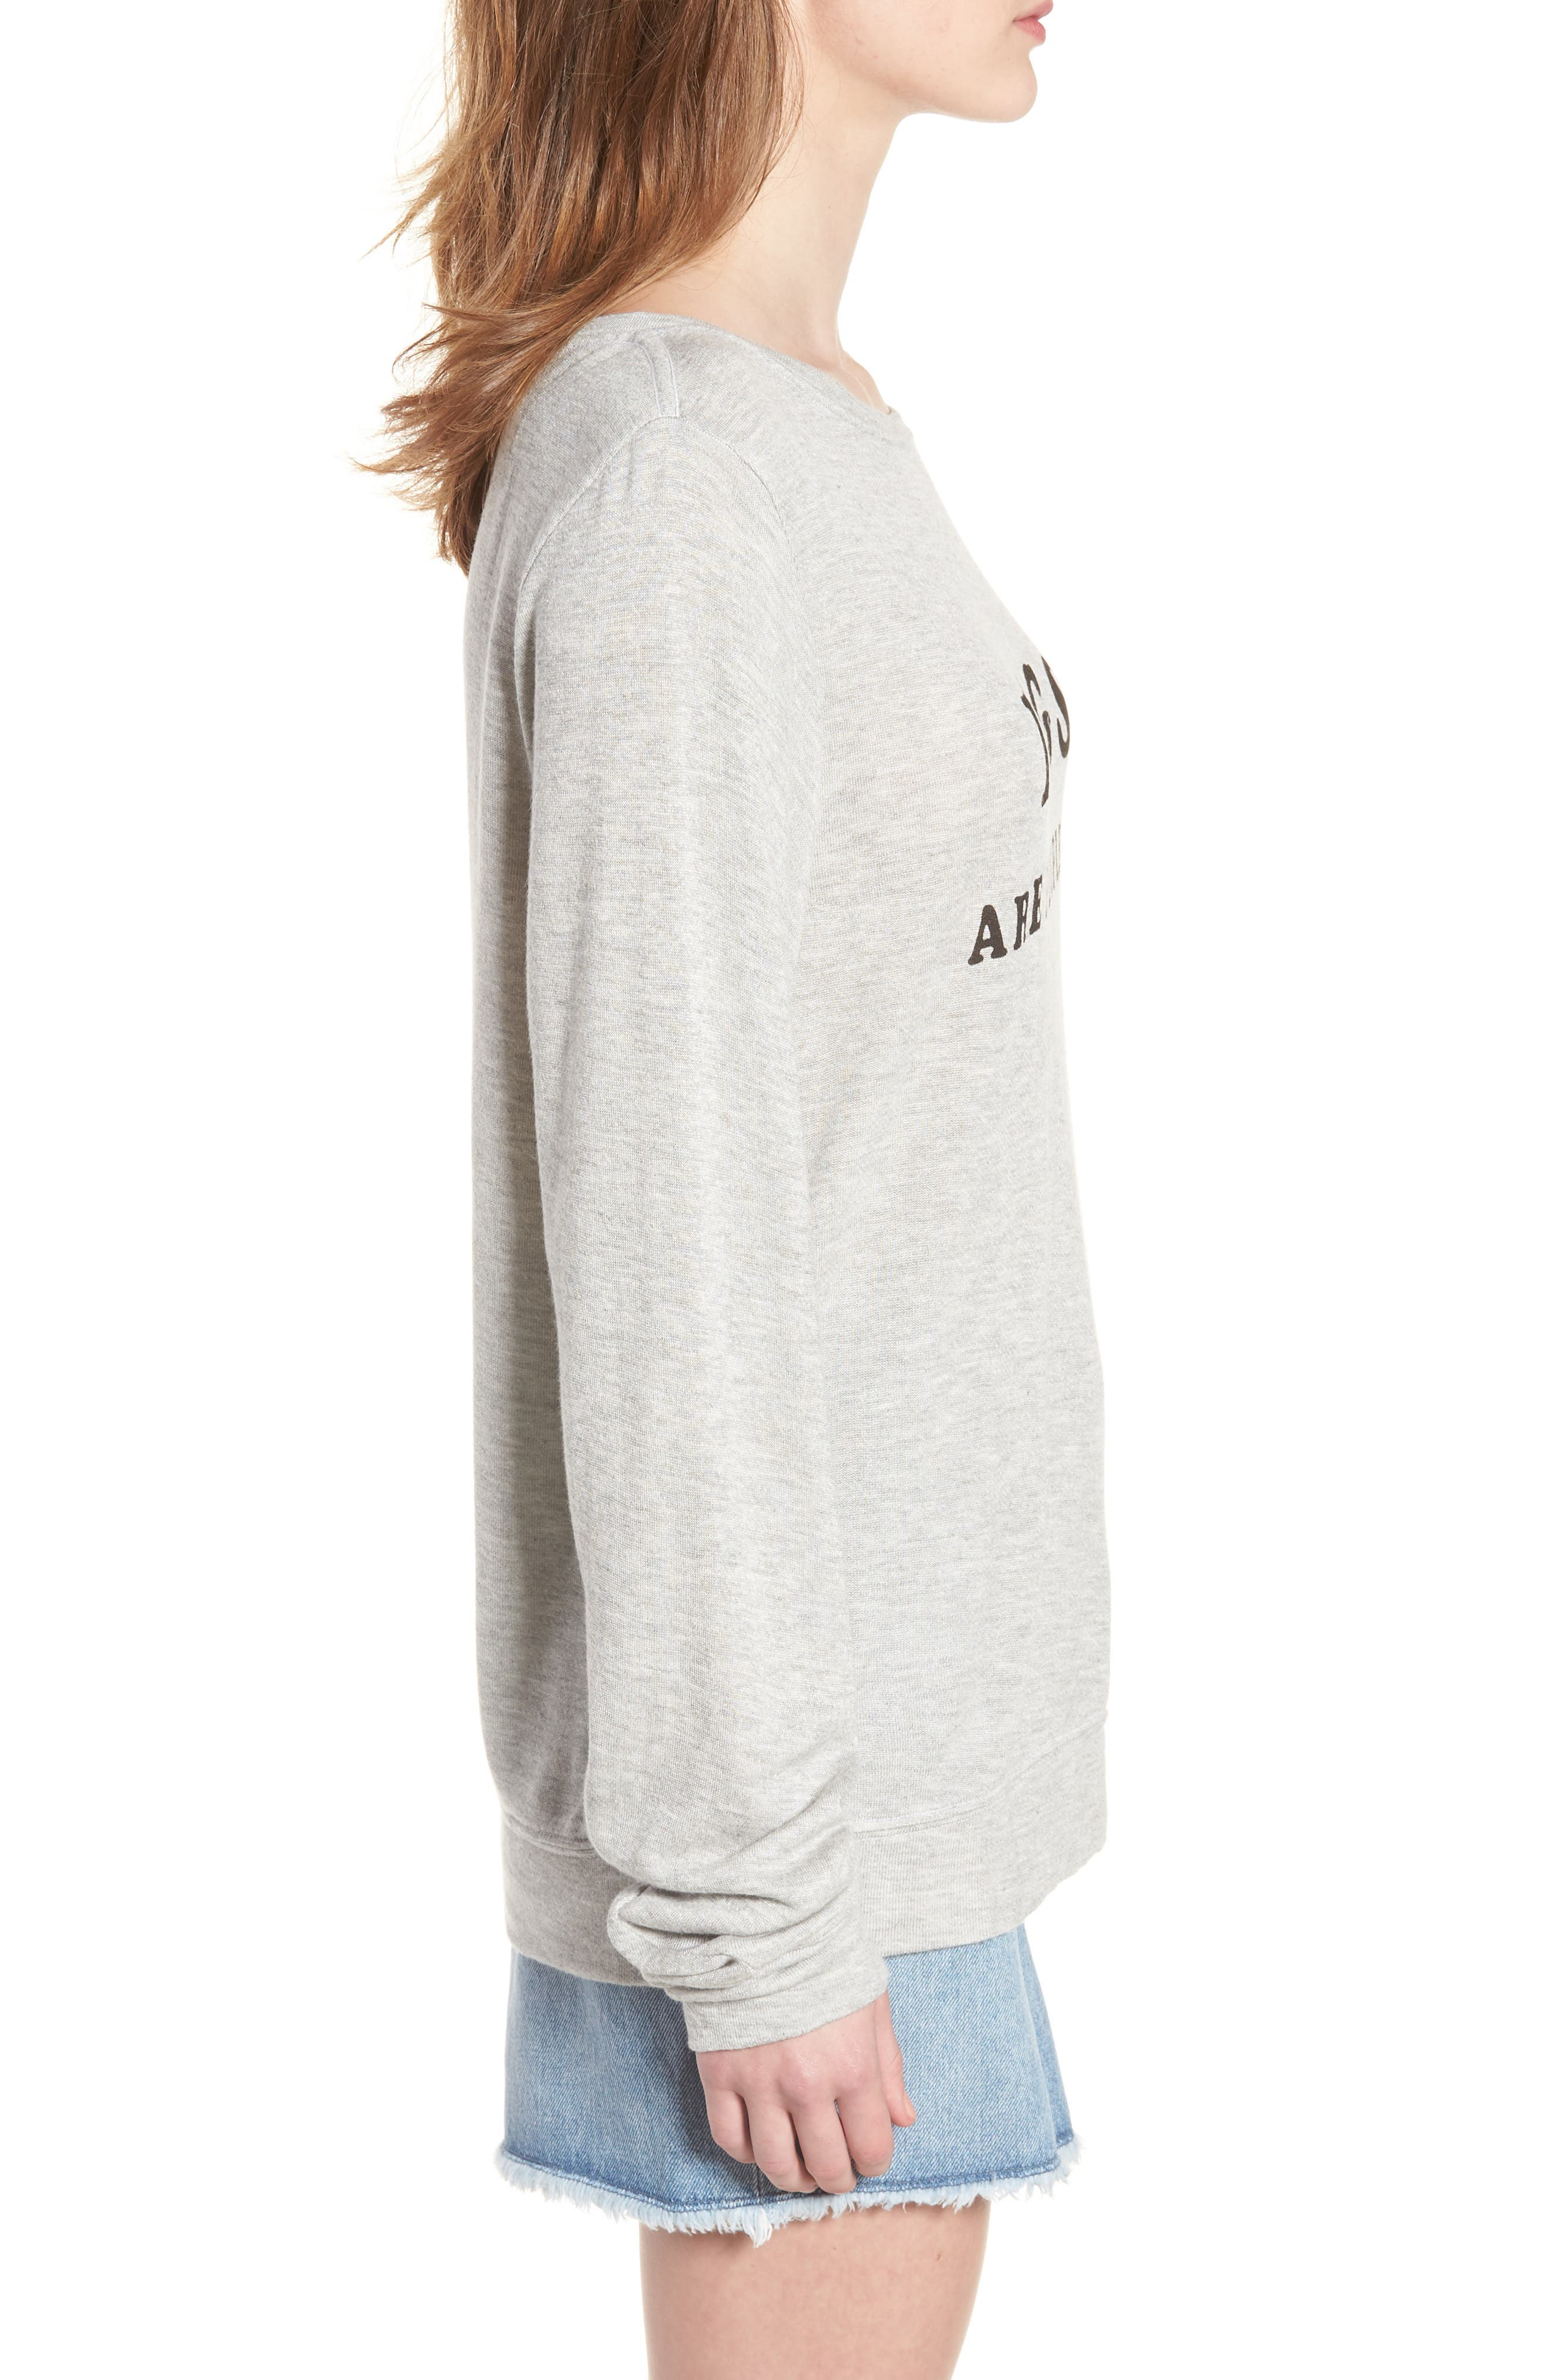 Dogs - Baggy Beach Jumper Pullover,                             Alternate thumbnail 3, color,                             020